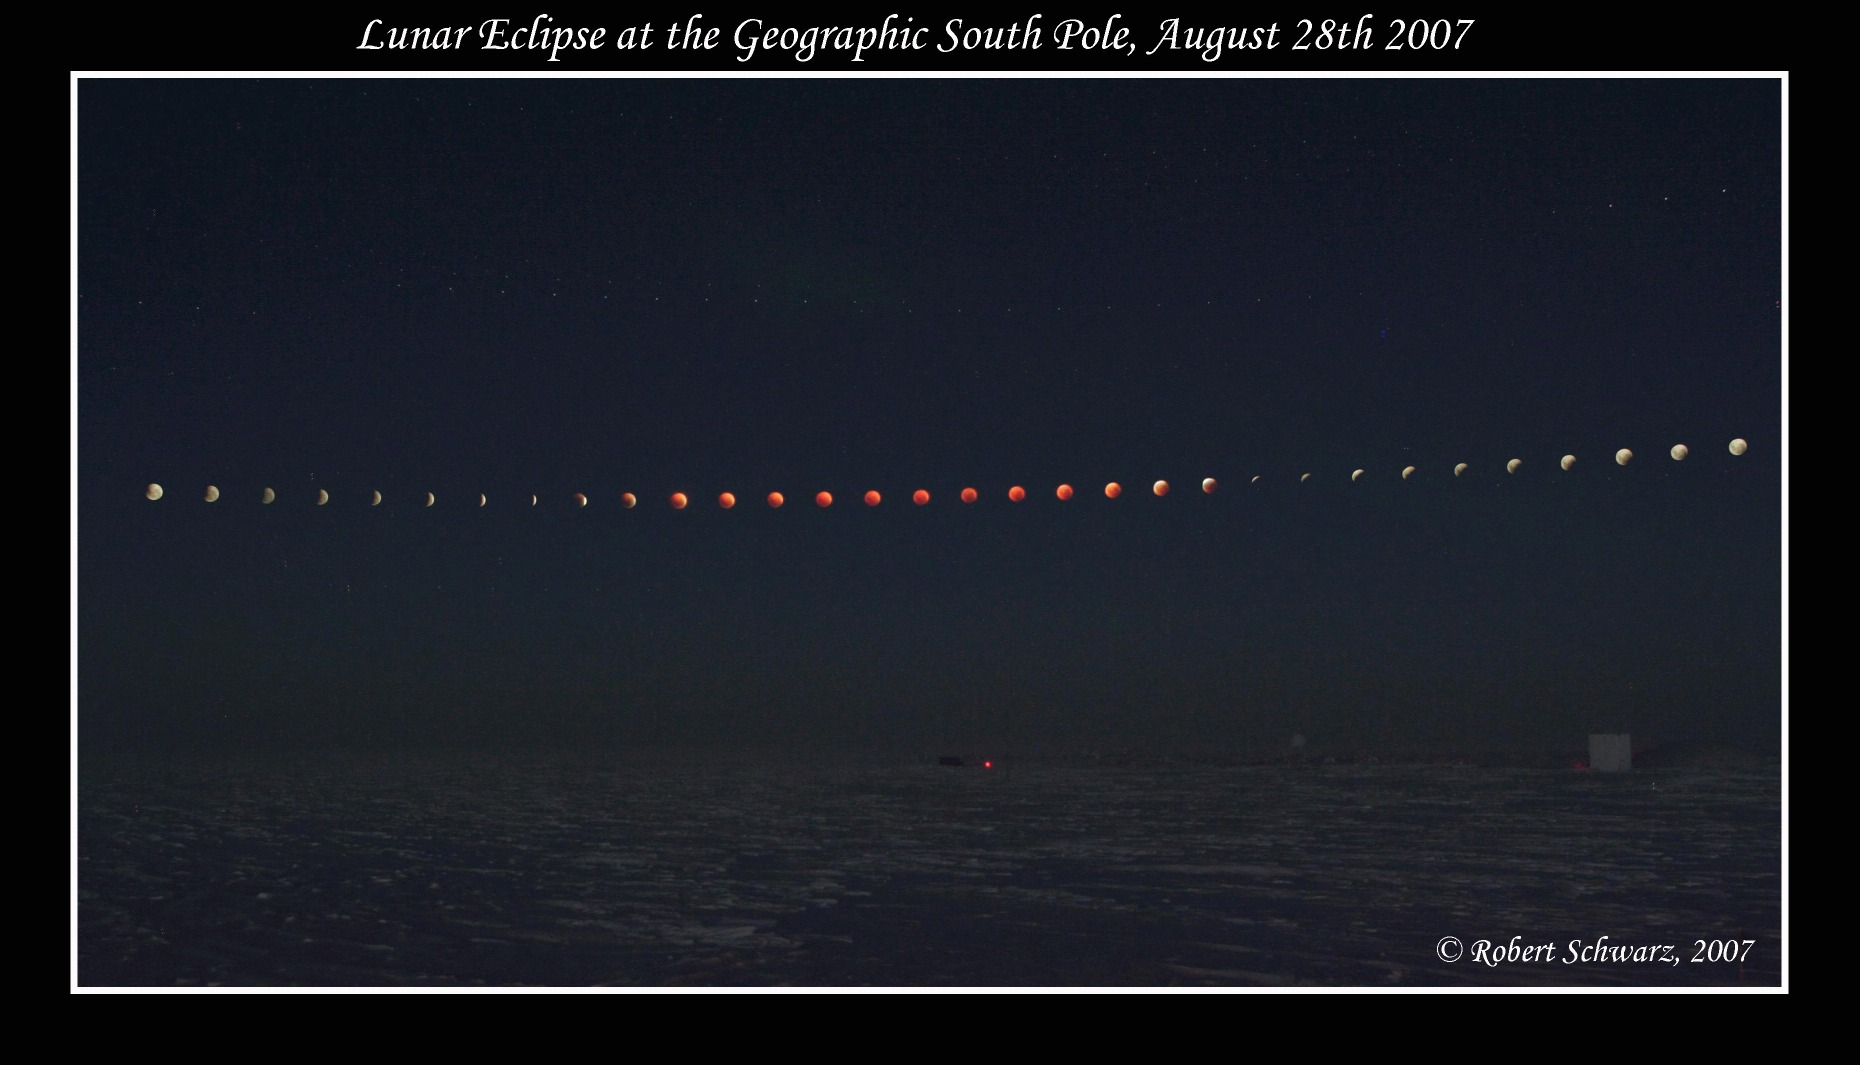 South Pole Lunar Eclipse